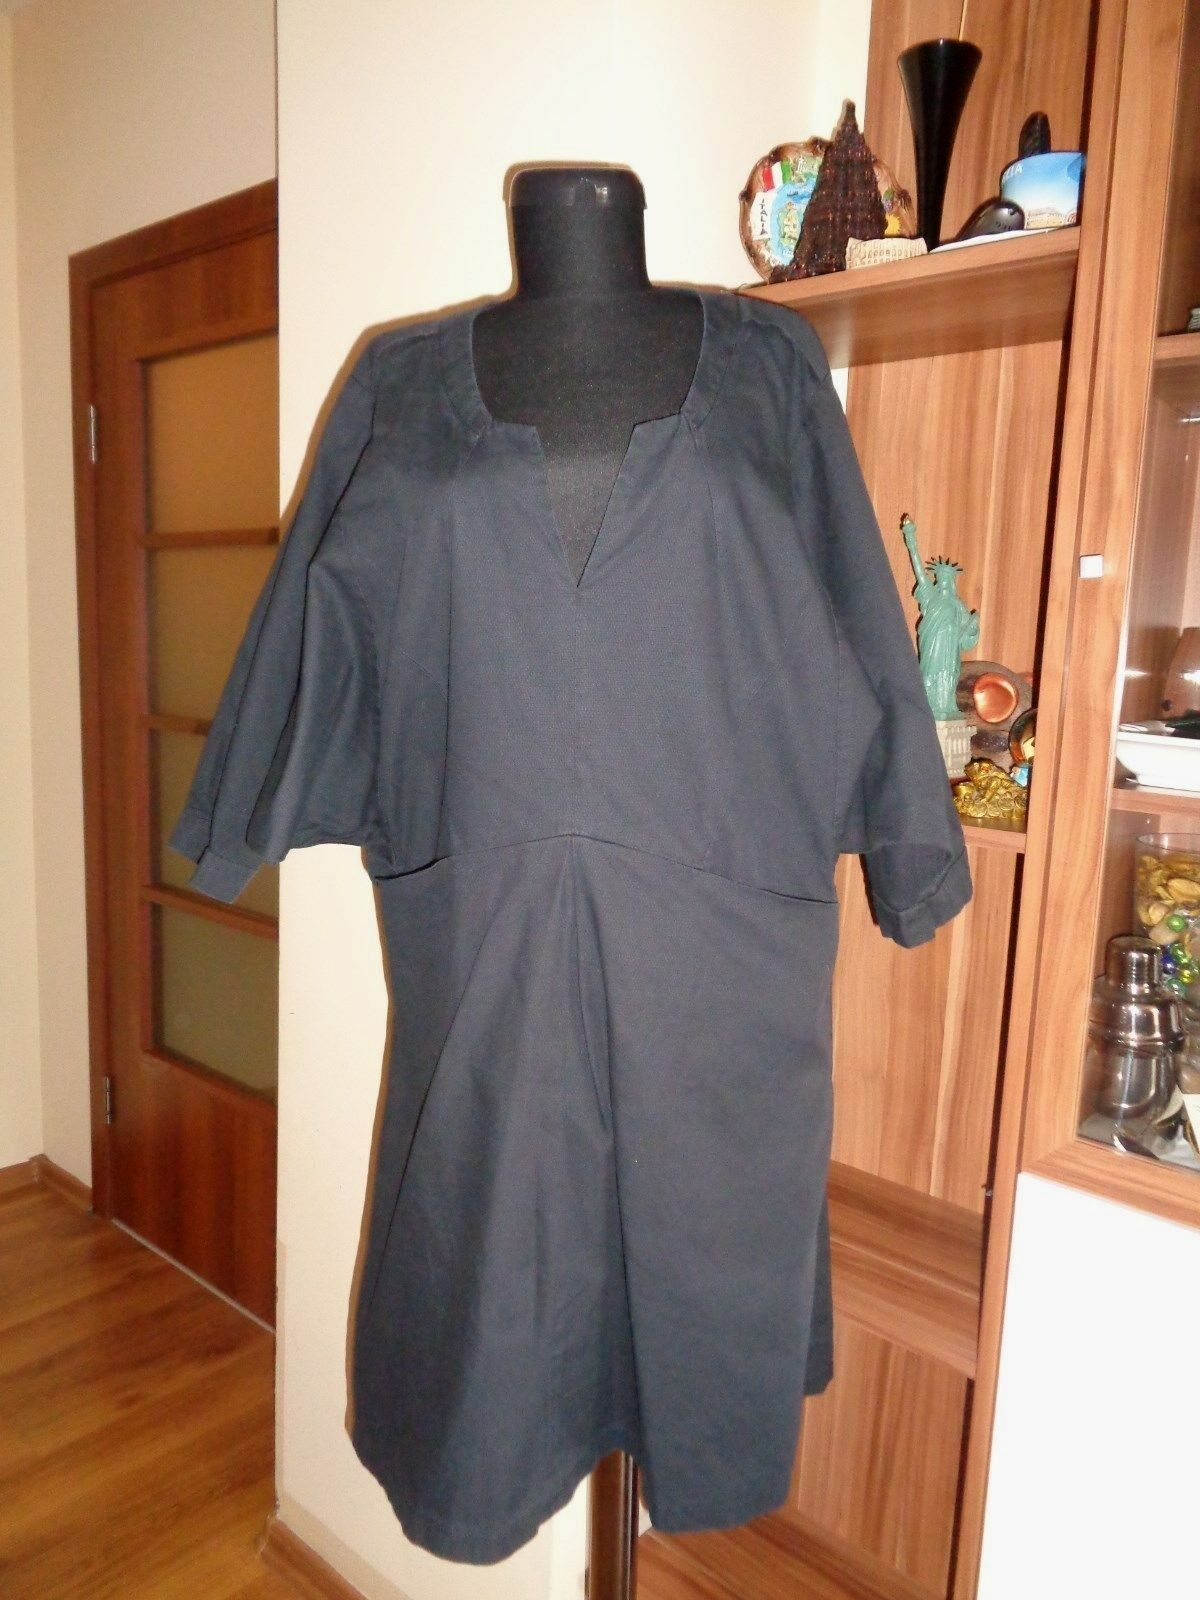 HOPE BY RINGSTRAND SODERBERG ASH ANTRACITHE COTTON RELAXED TUNIC DRESS-SIZE 38